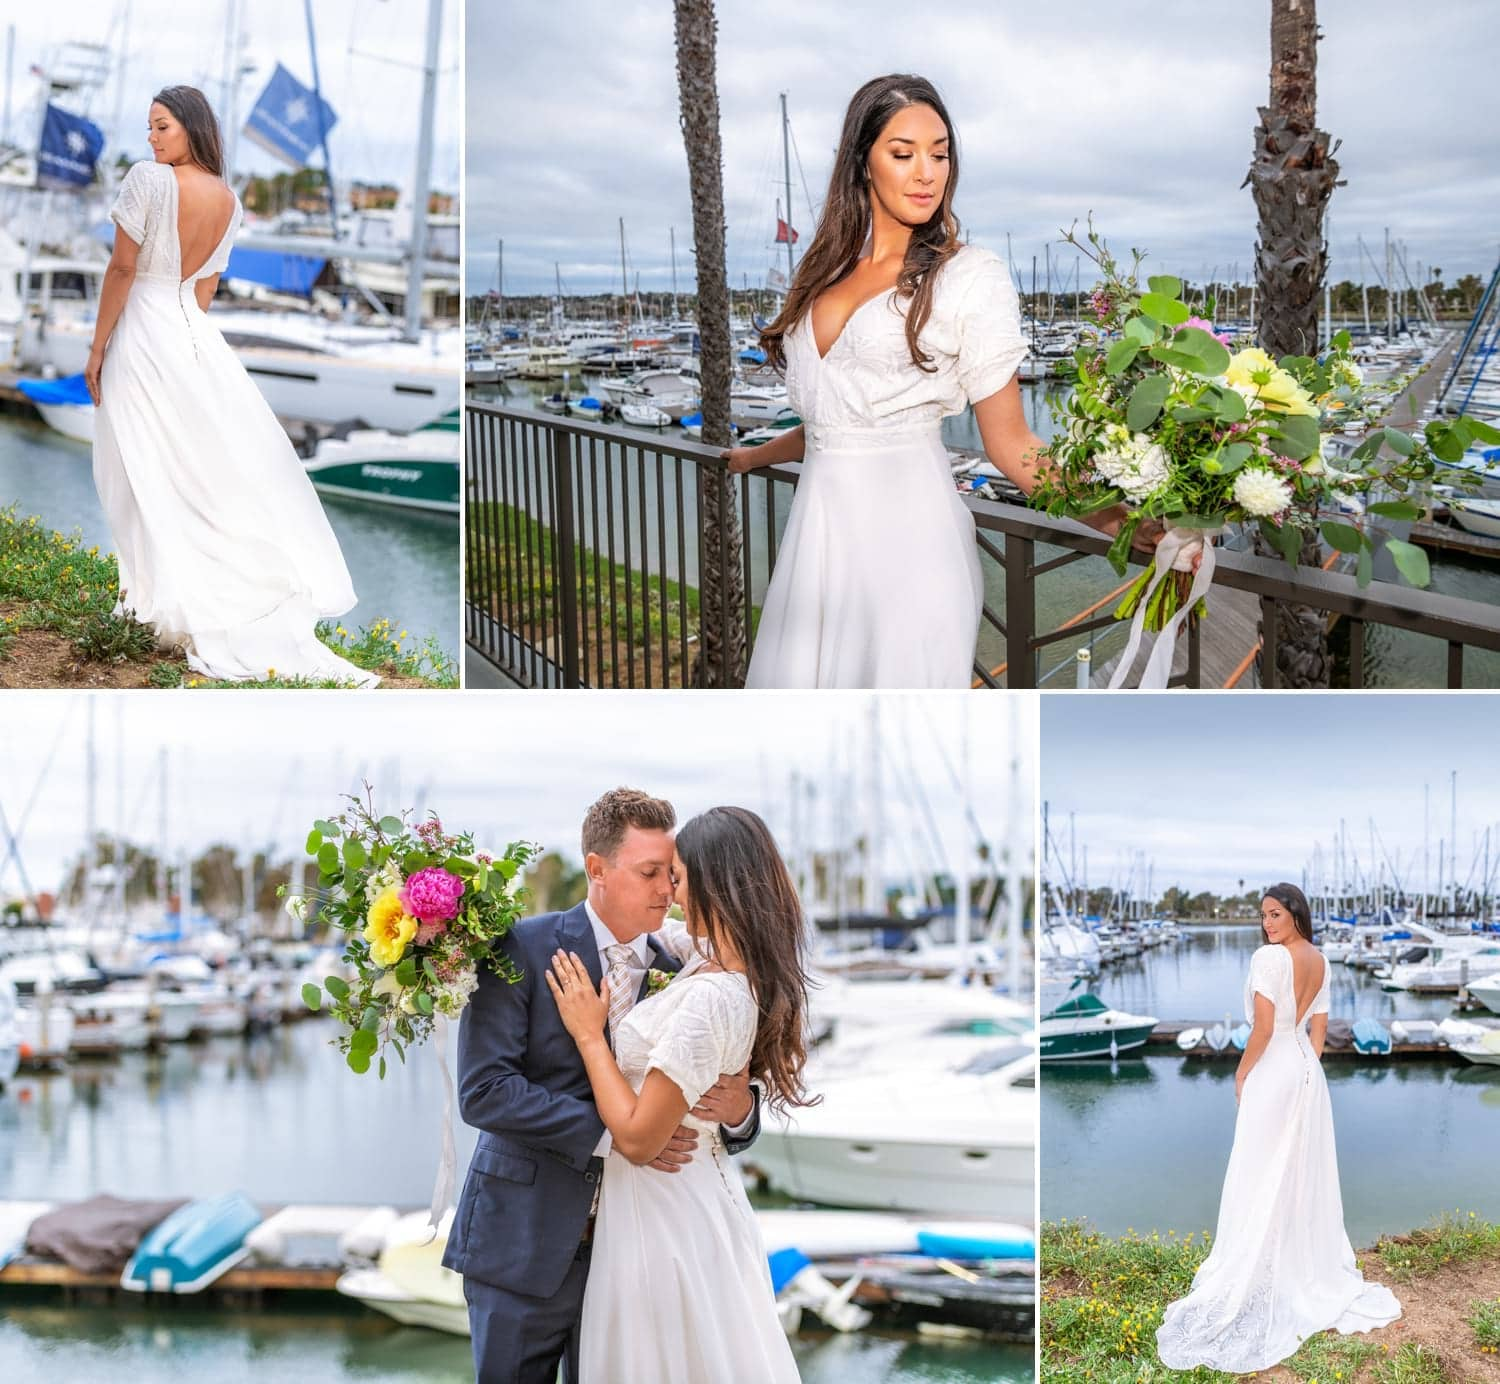 Bride and groom at Harbor View Loft wedding venue in San Diego